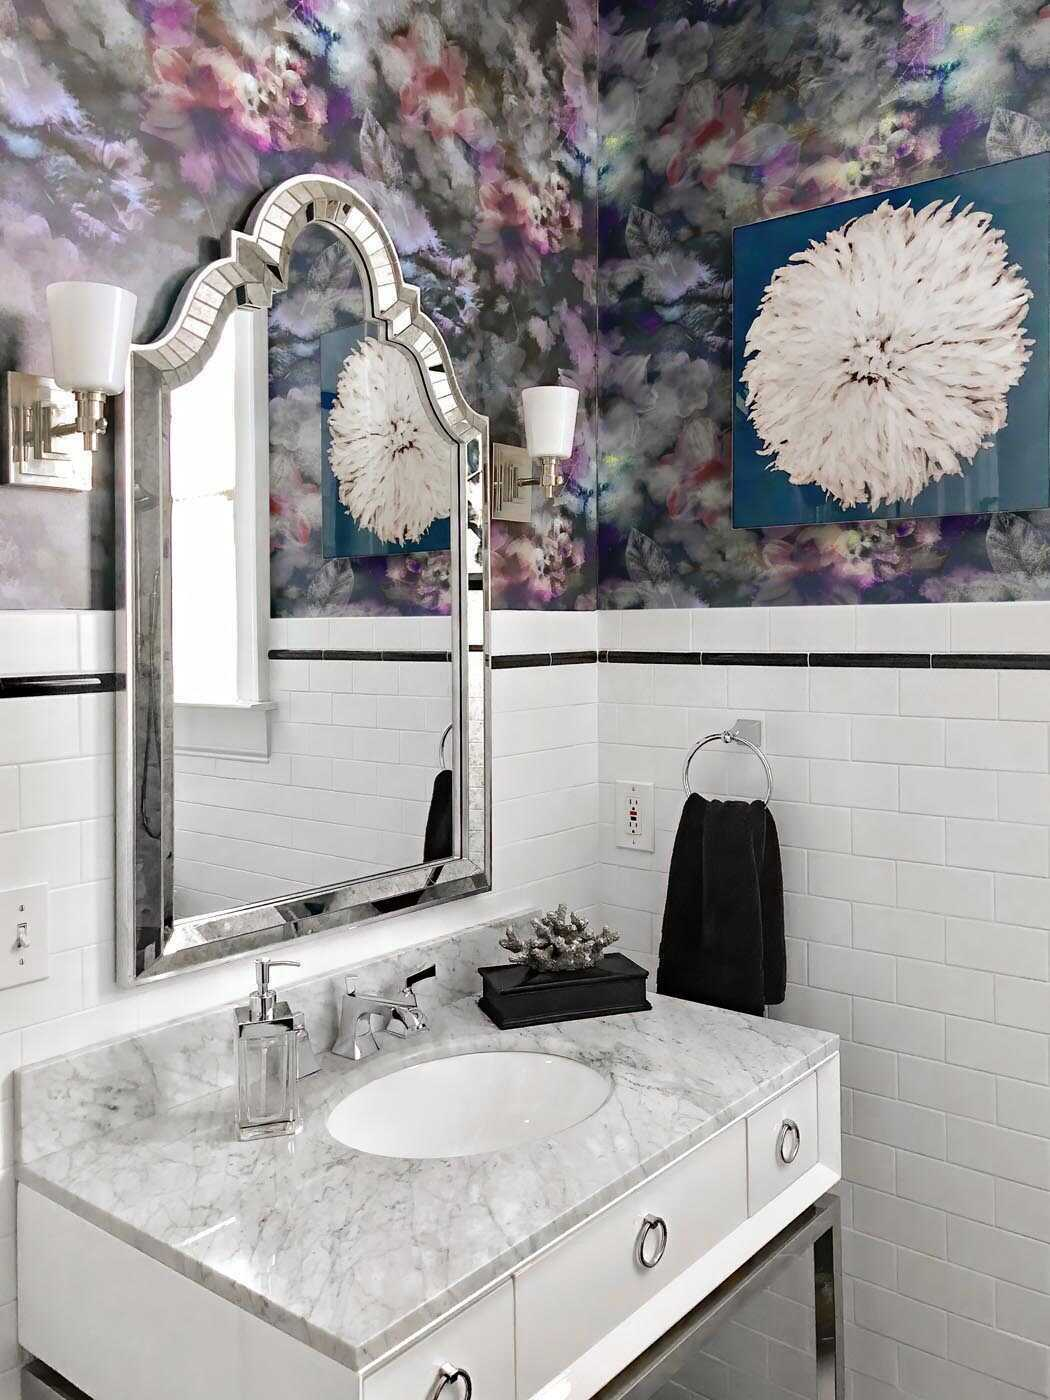 What to consider when you're shopping for wallpaper? Many factors come into play for this decision. Here are 6 things to consider before purchasing peel and stick wallpaper.